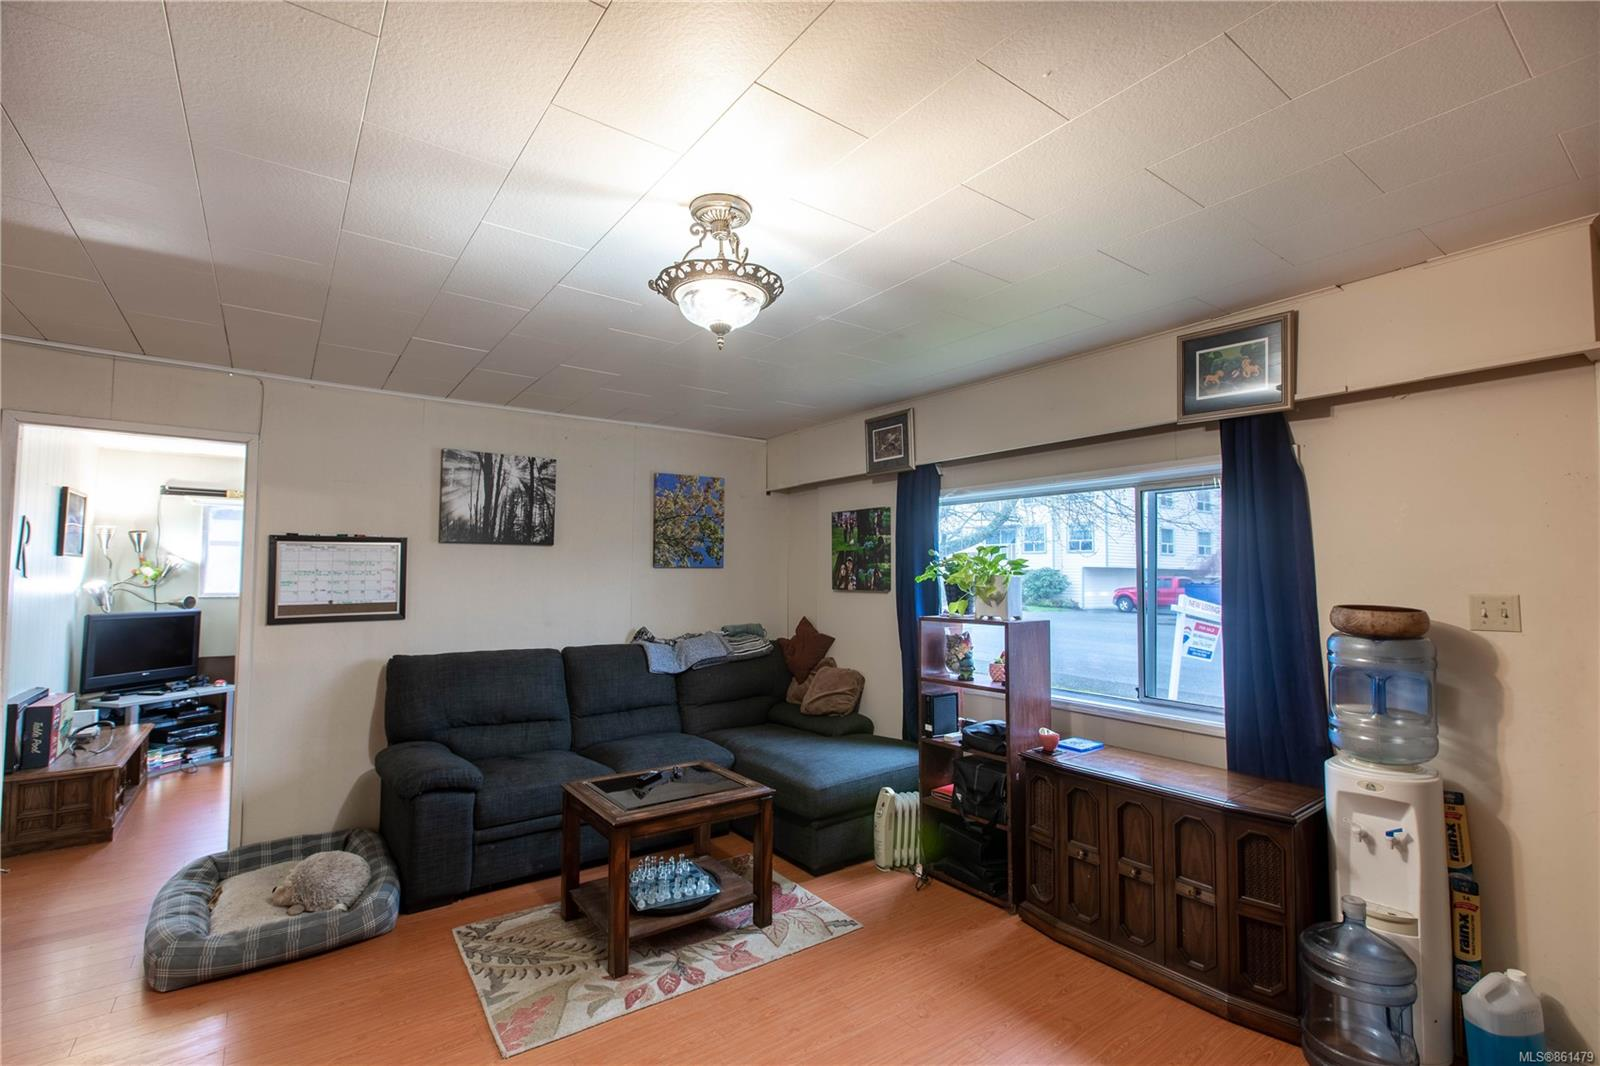 Photo 34 at 430 Festubert Street, Cowichan